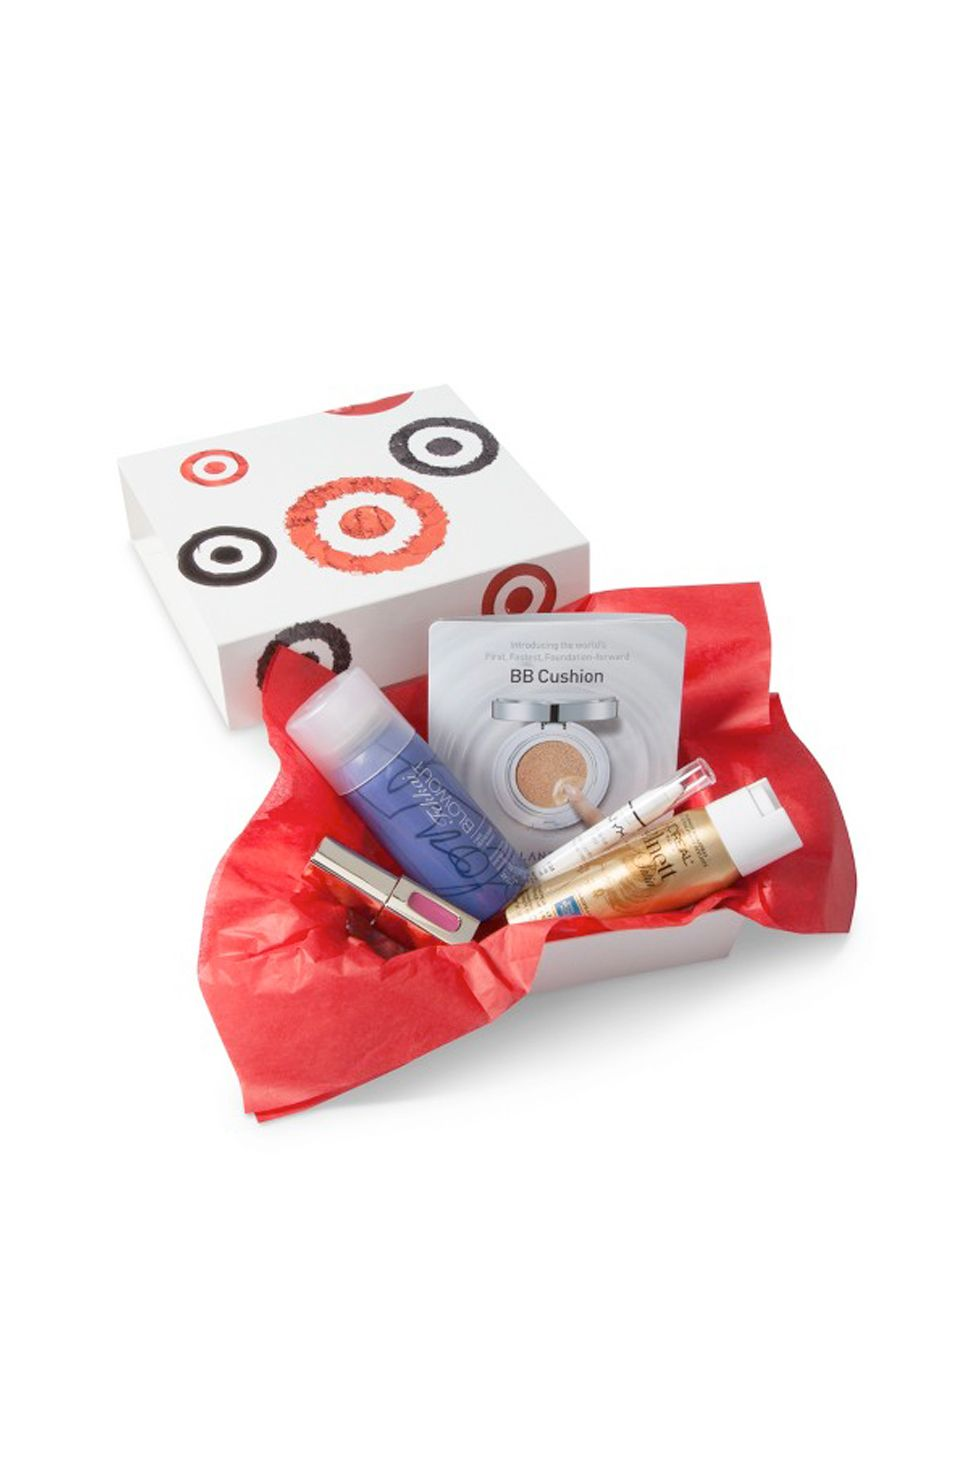 22 Best Makeup Subscription Boxes - Top Beauty Subscription Gifts